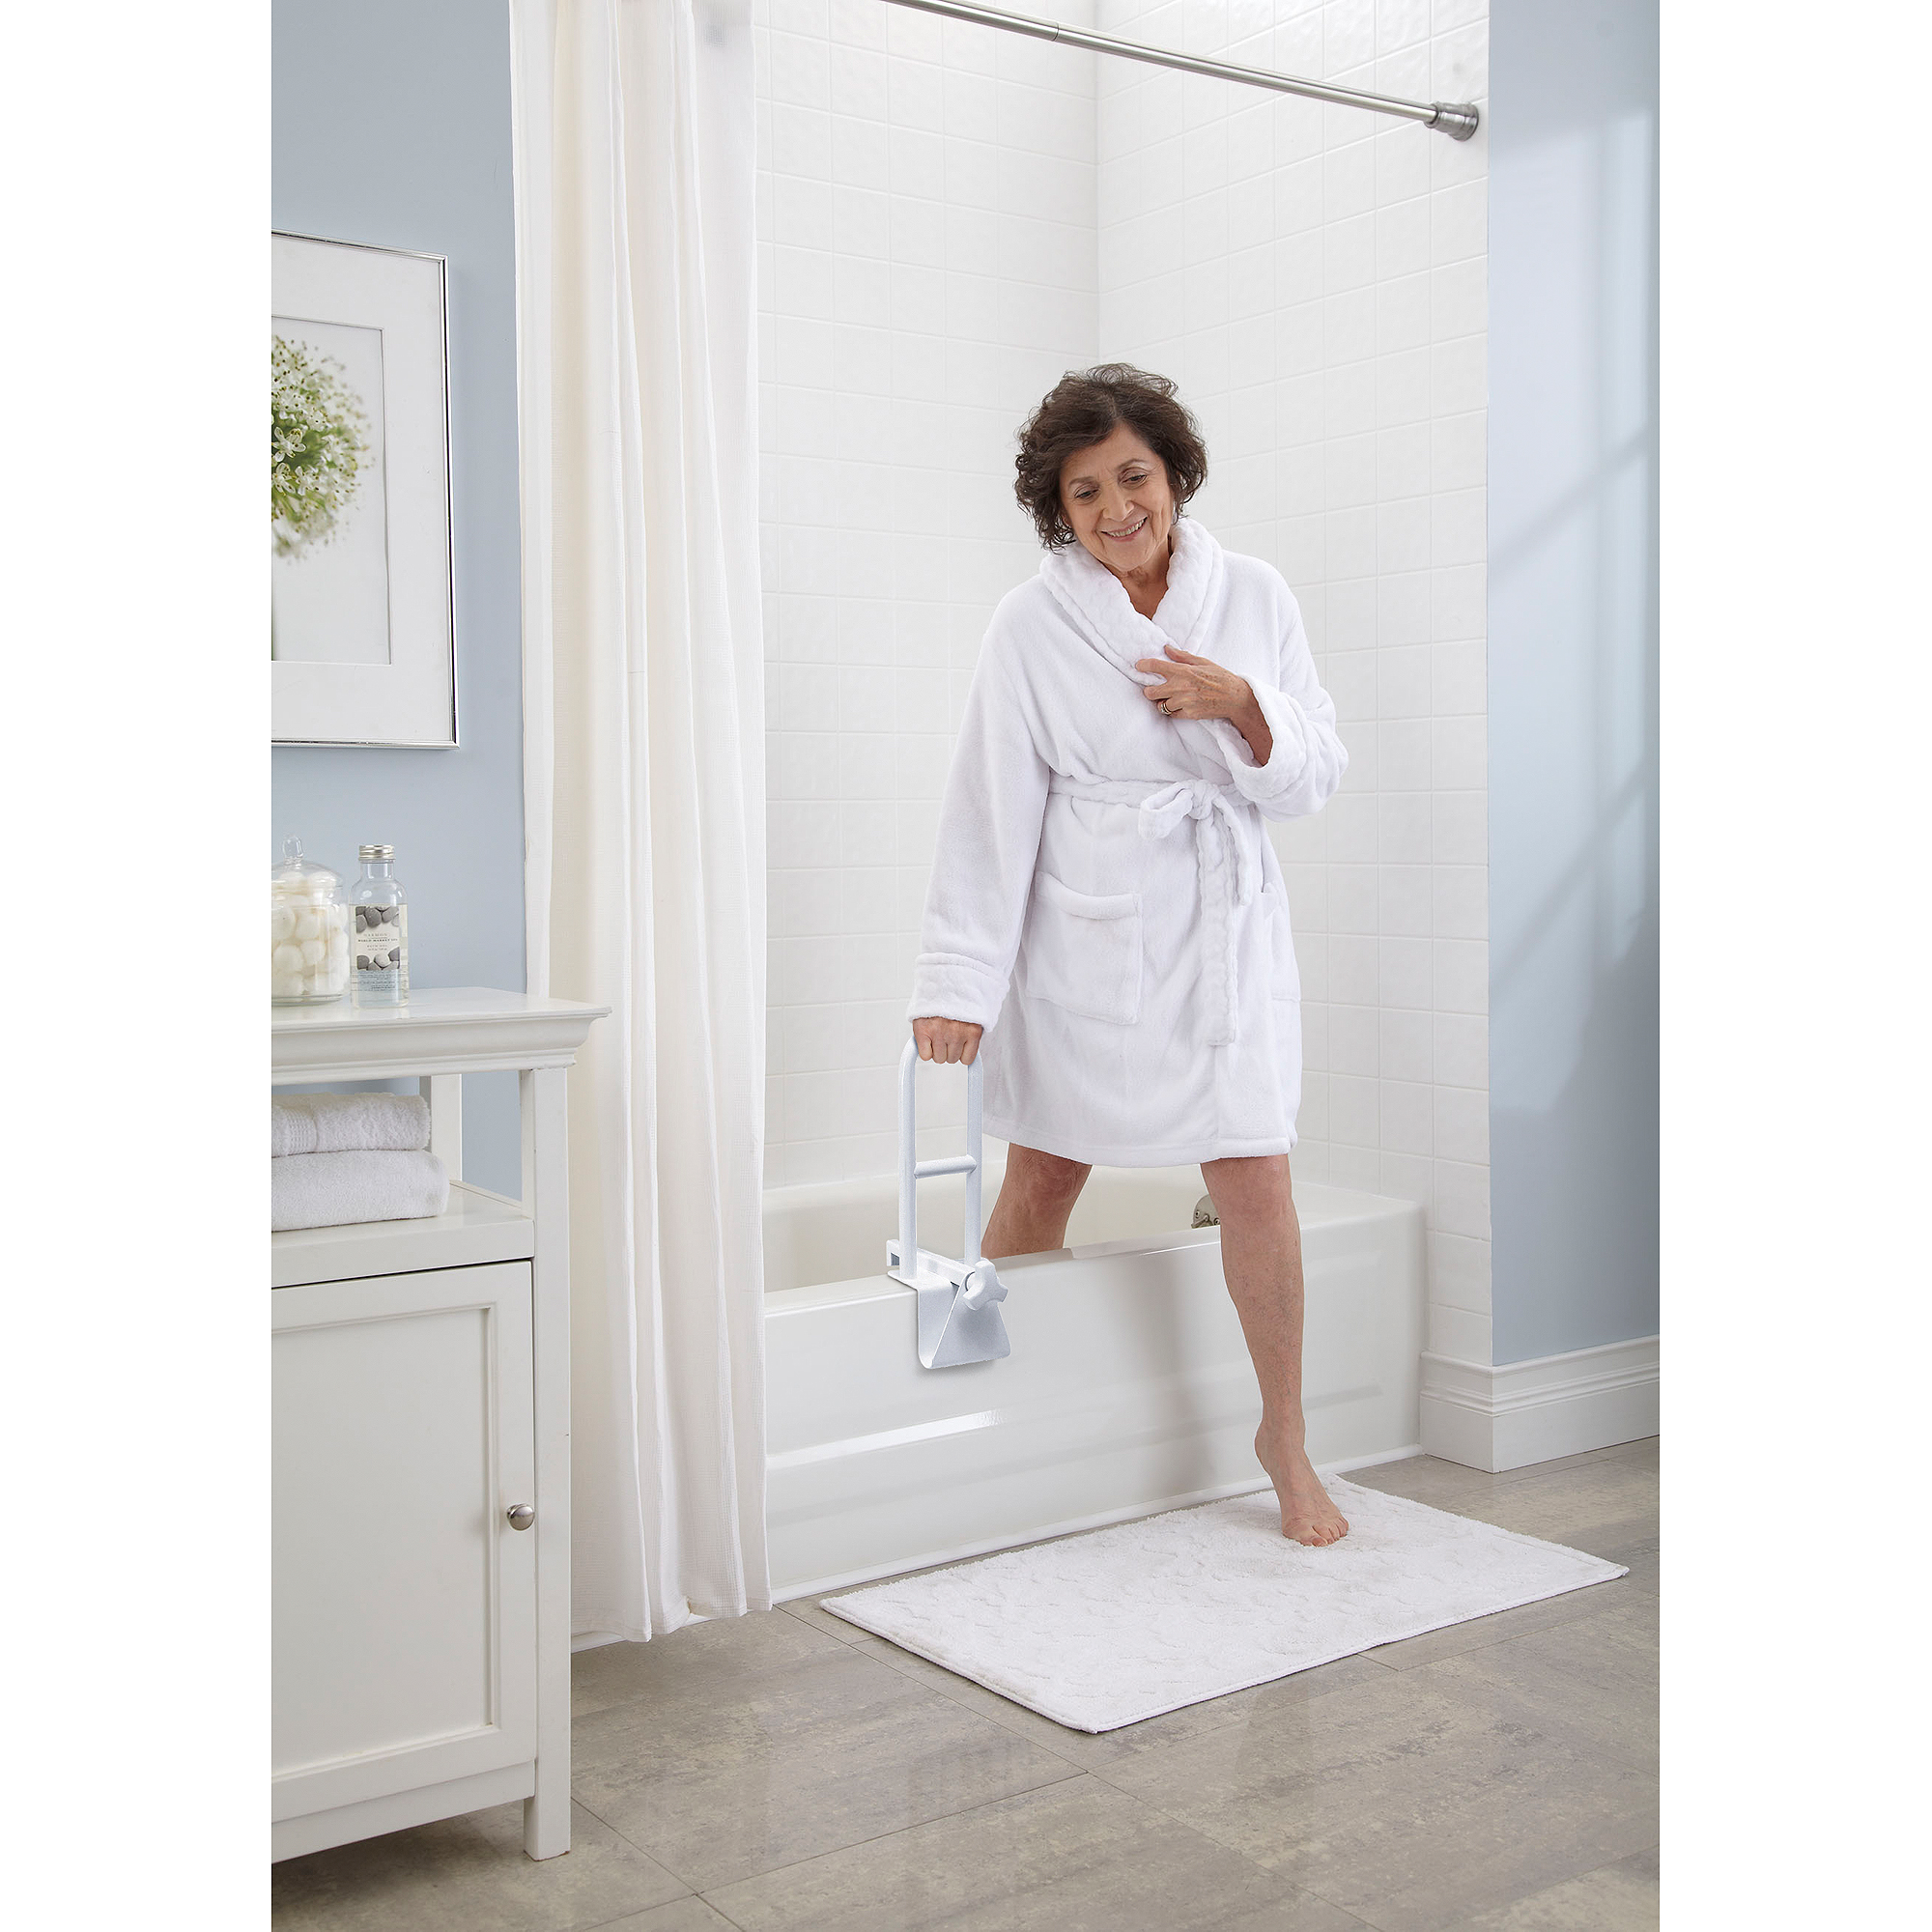 Medline Bath Tub Safety Bar - Walmart.com